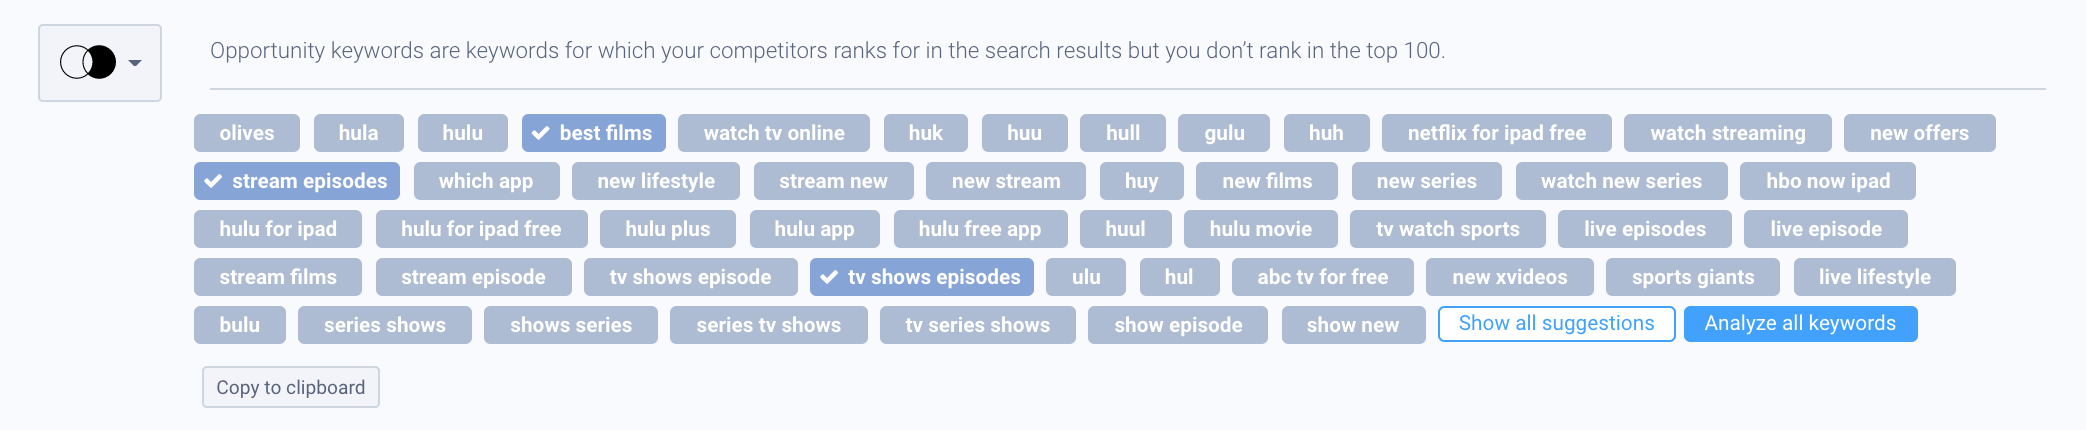 Opportunity Keywords for Hulu